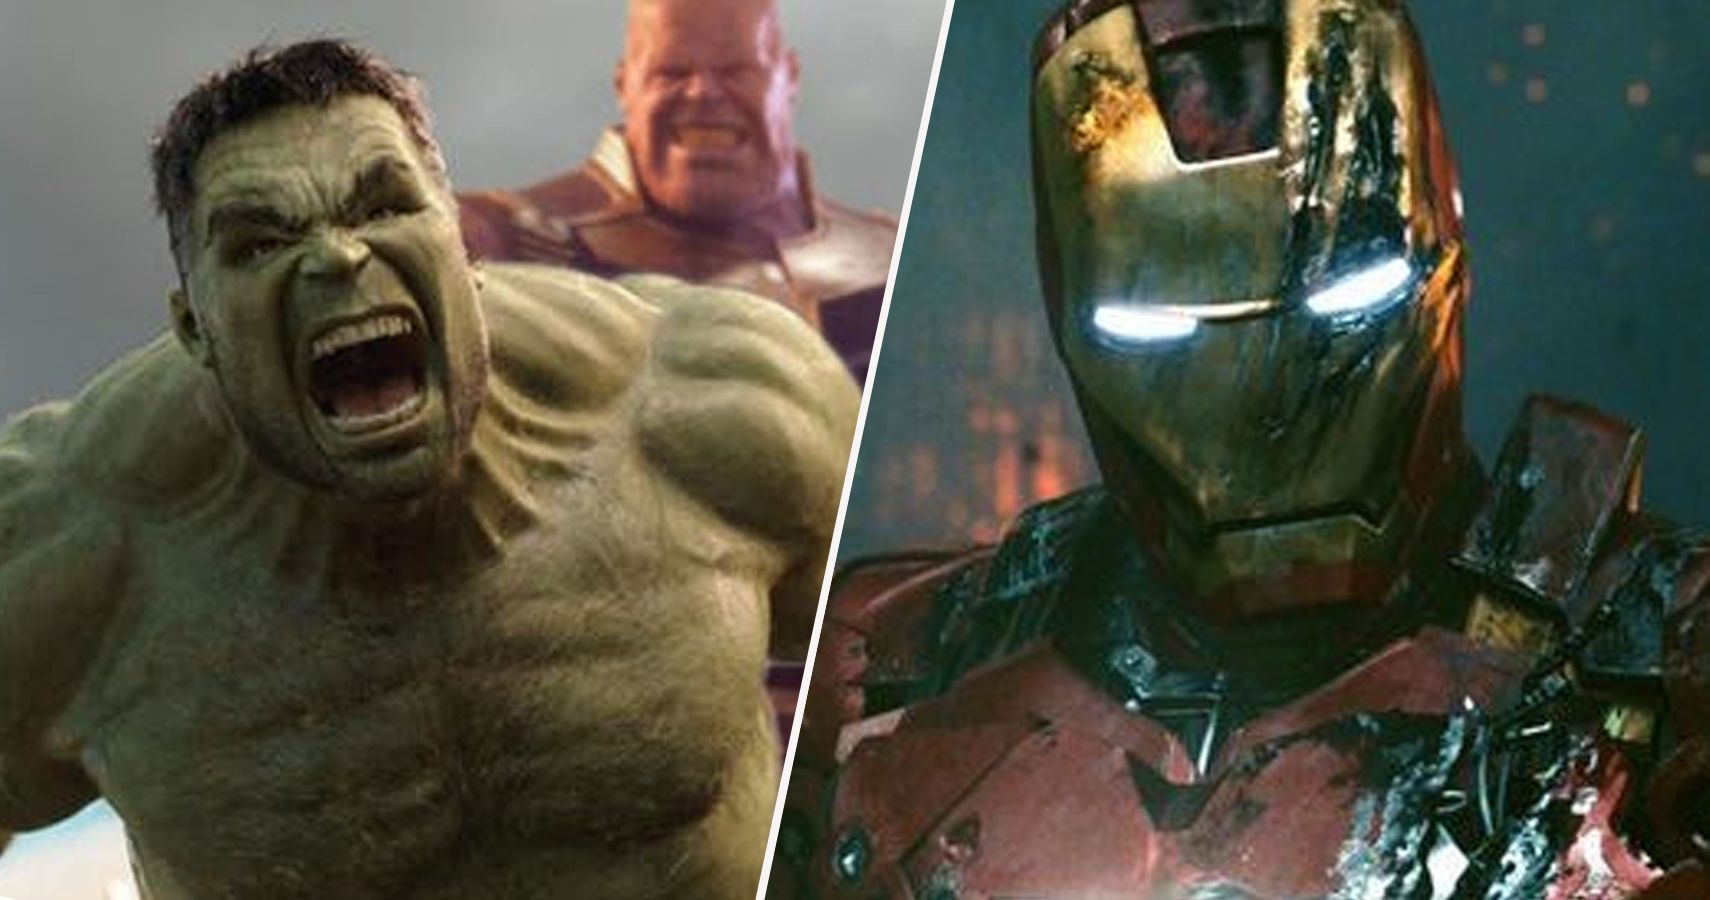 Marvel: 25 Weird Things In The MCU That Make No Sense (And Fans Ignore)